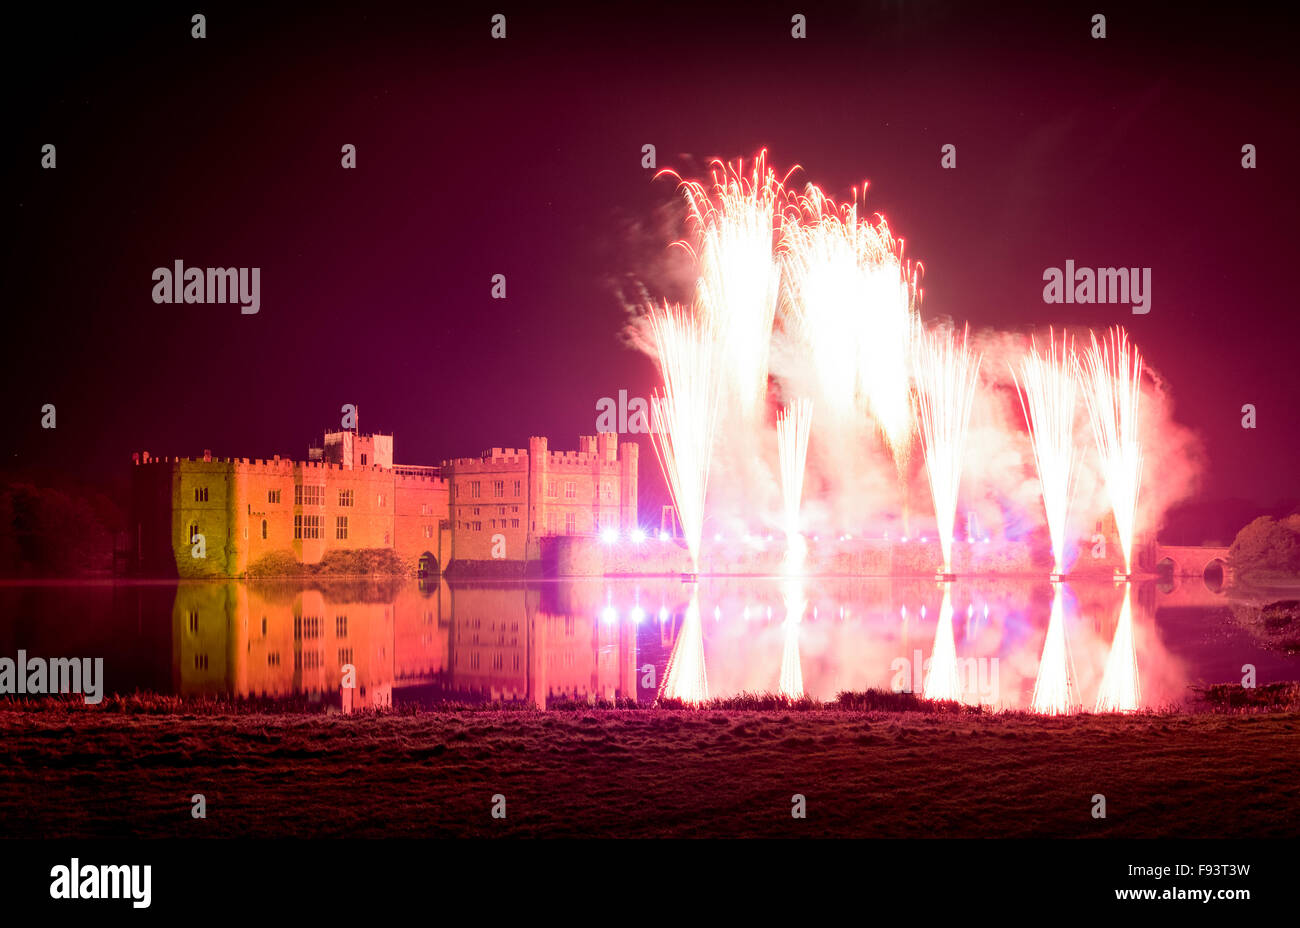 The annual fireworks display at Leeds Castle, Maidstone, Kent, UK. - Stock Image